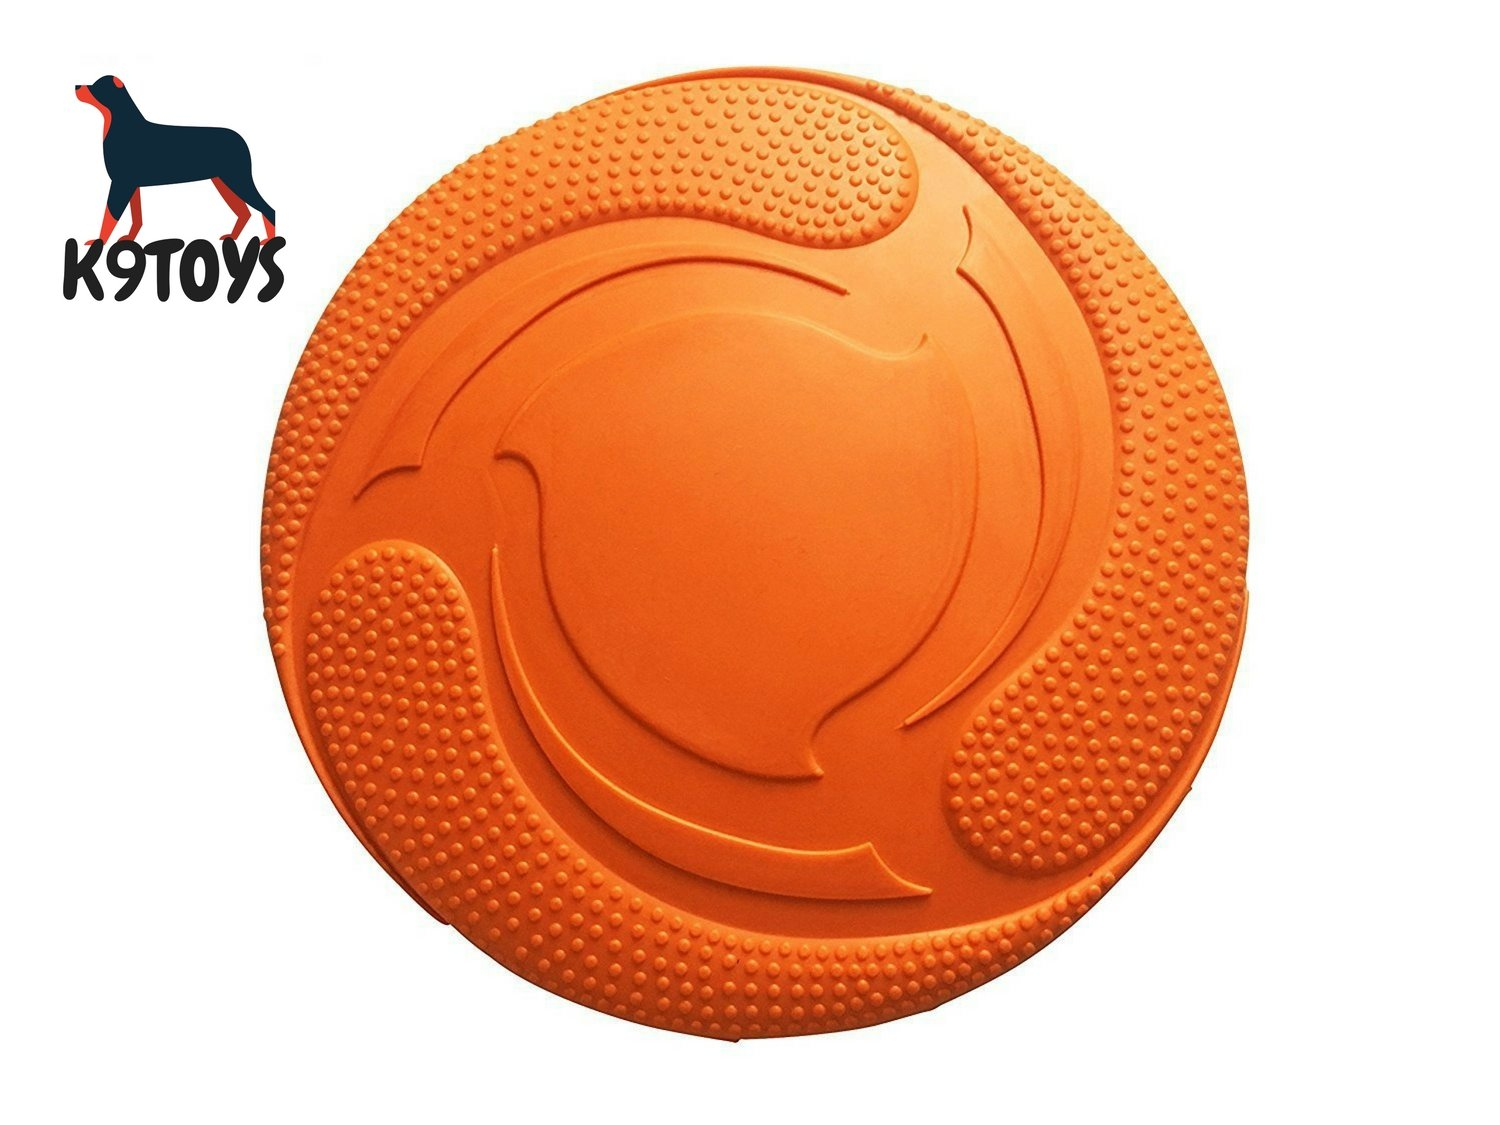 Durable Rubber Dog Frisbee - 100% Soft Natural Non-Toxic - Tough Rubber Training Frisbee - Flies Perfectly - Nearly Indestructible - High Grade, Strong Clean Chew Toy - Best Price for Better Quality